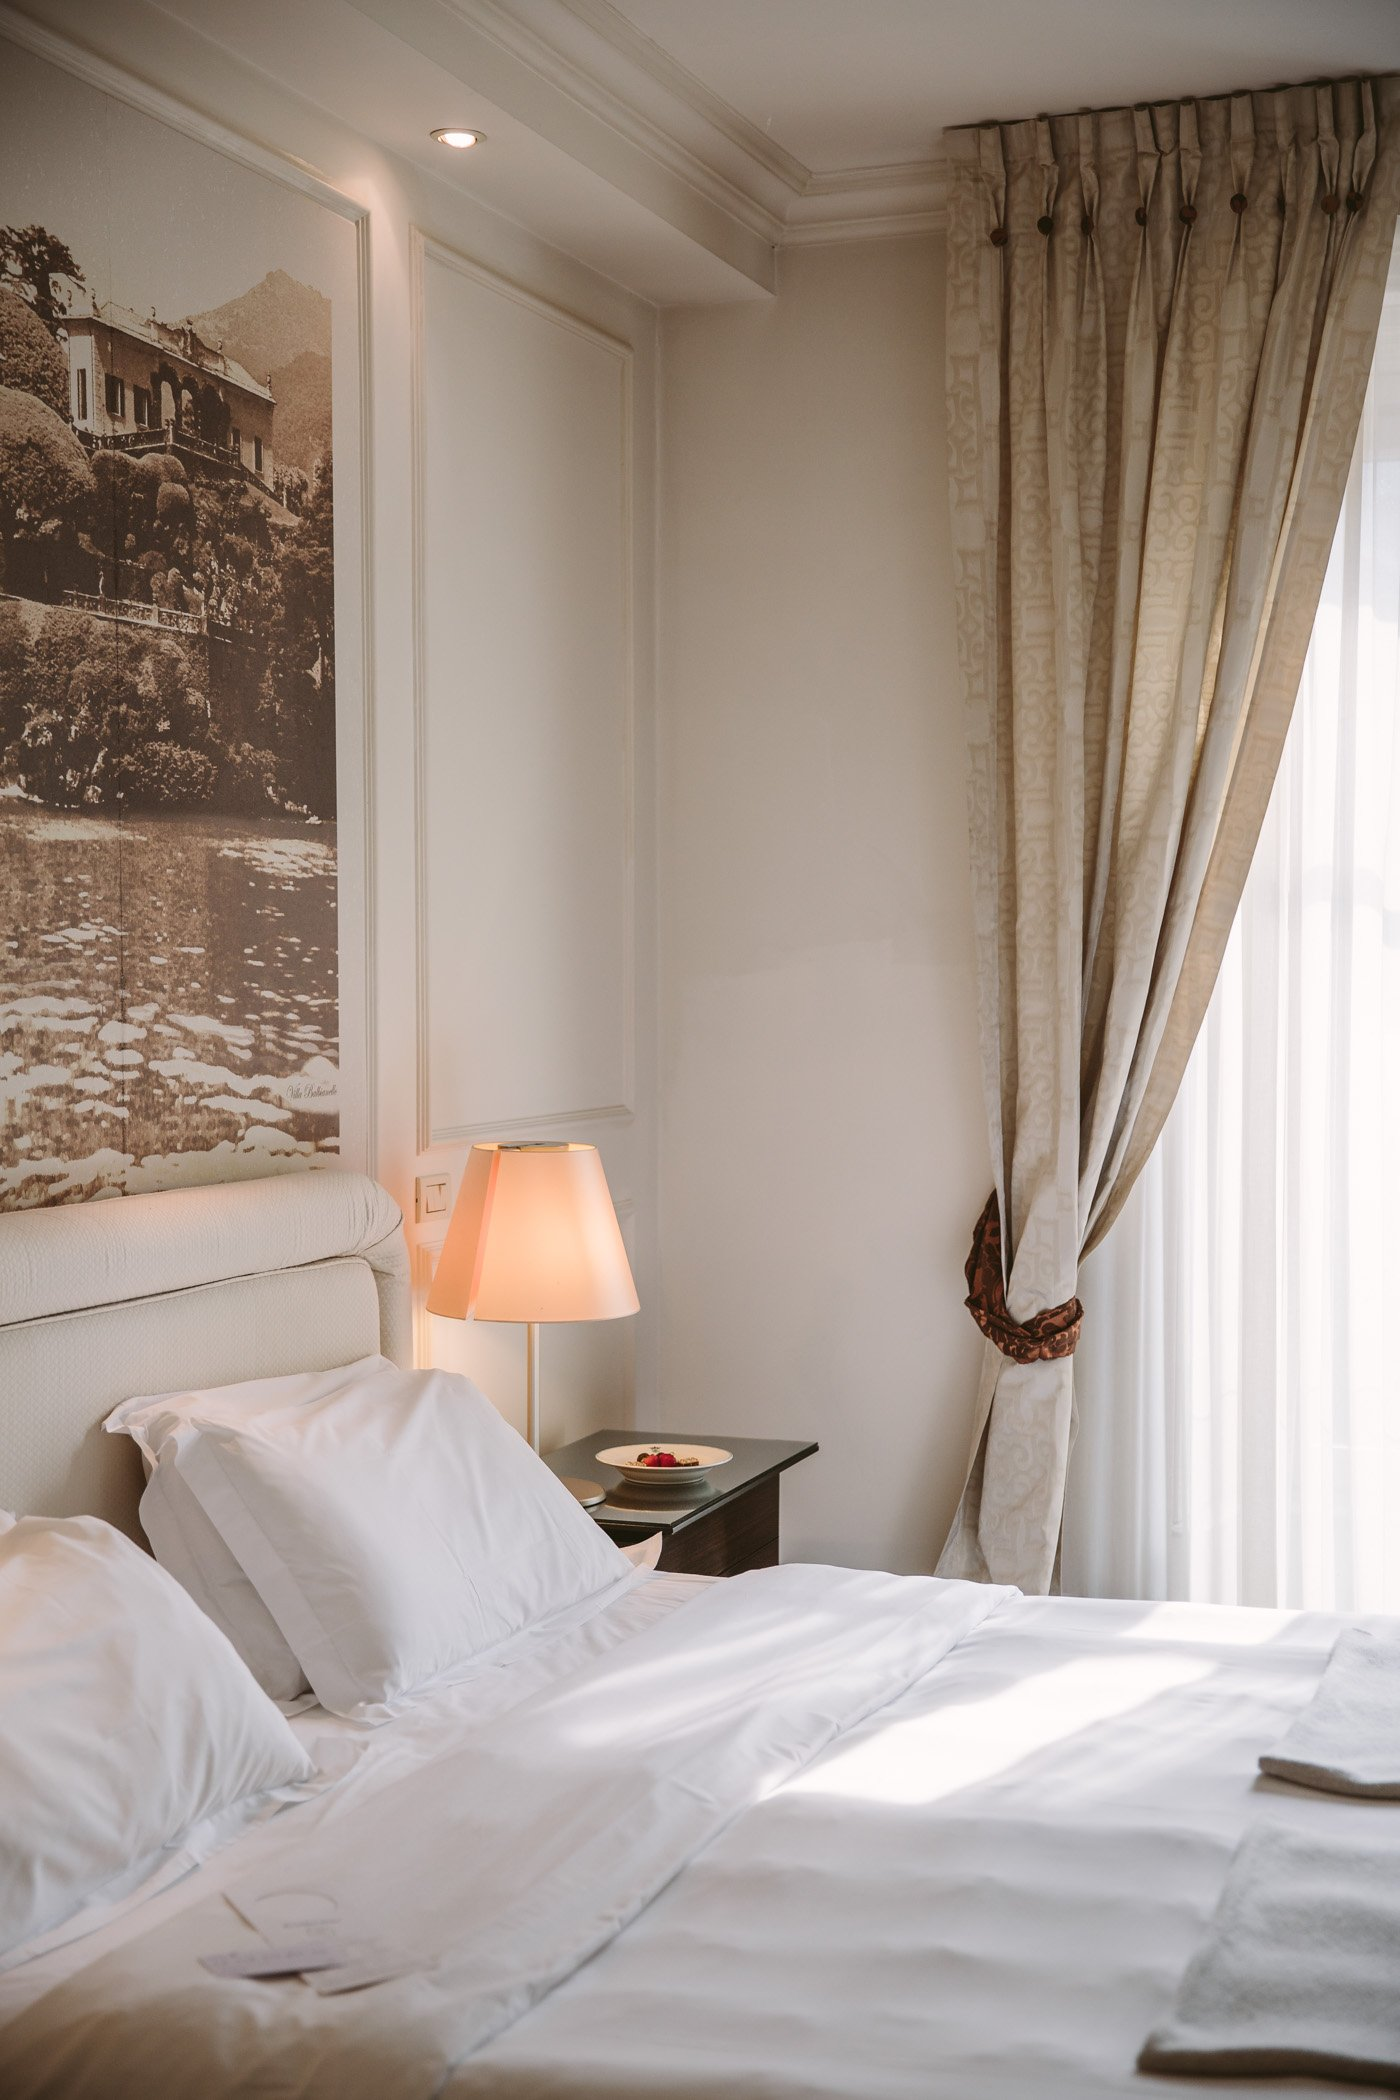 Albergo Terminus by Lario Hotels at Lago di Como